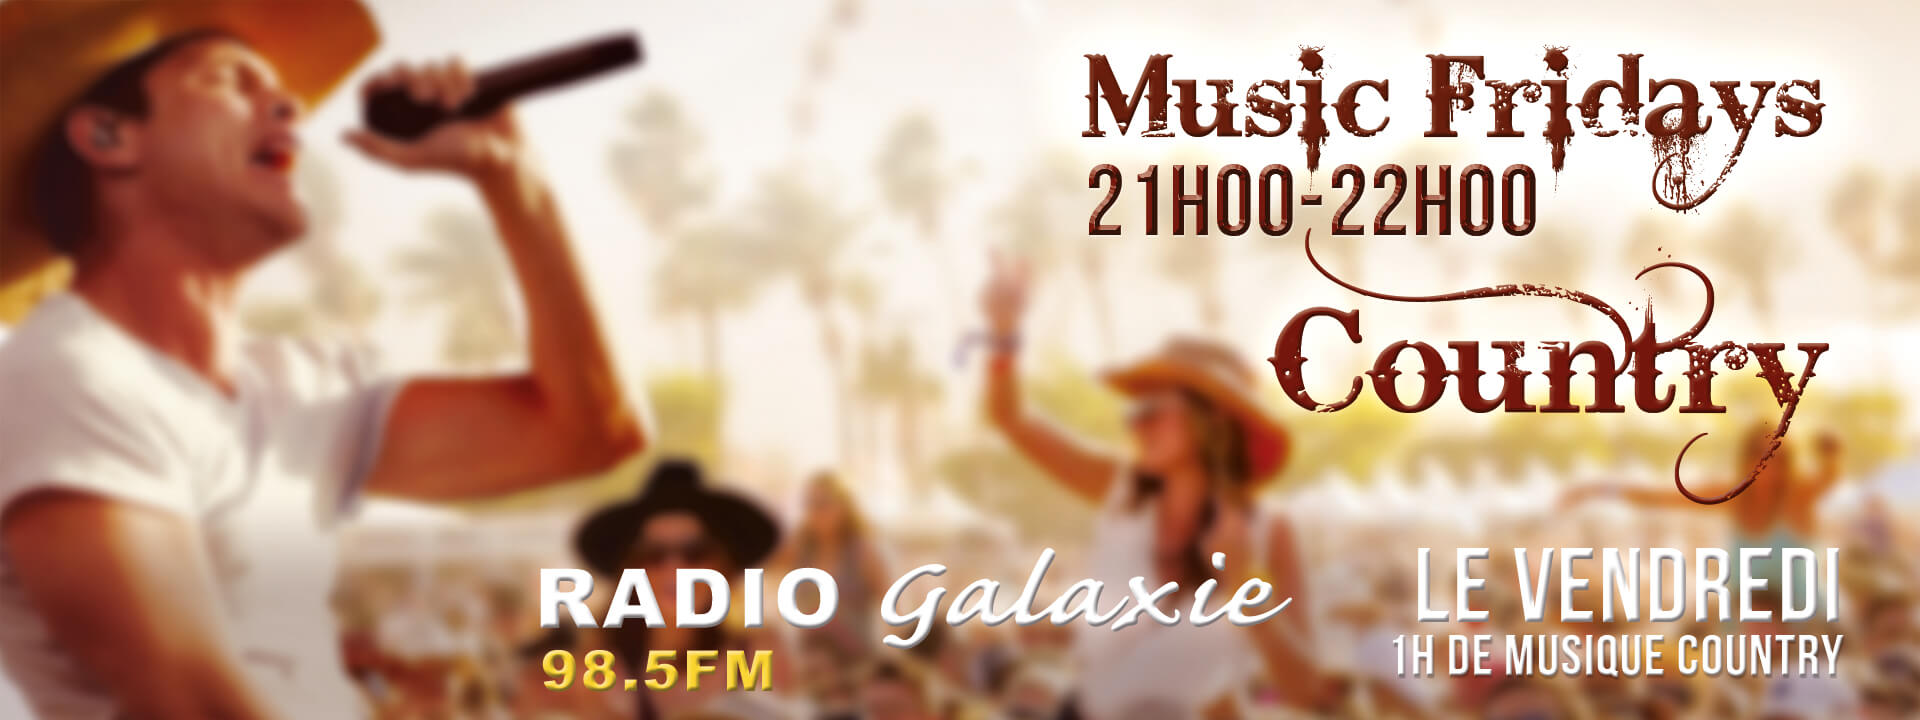 Radio Galaxie 98.5 FM - Musique - Country Club